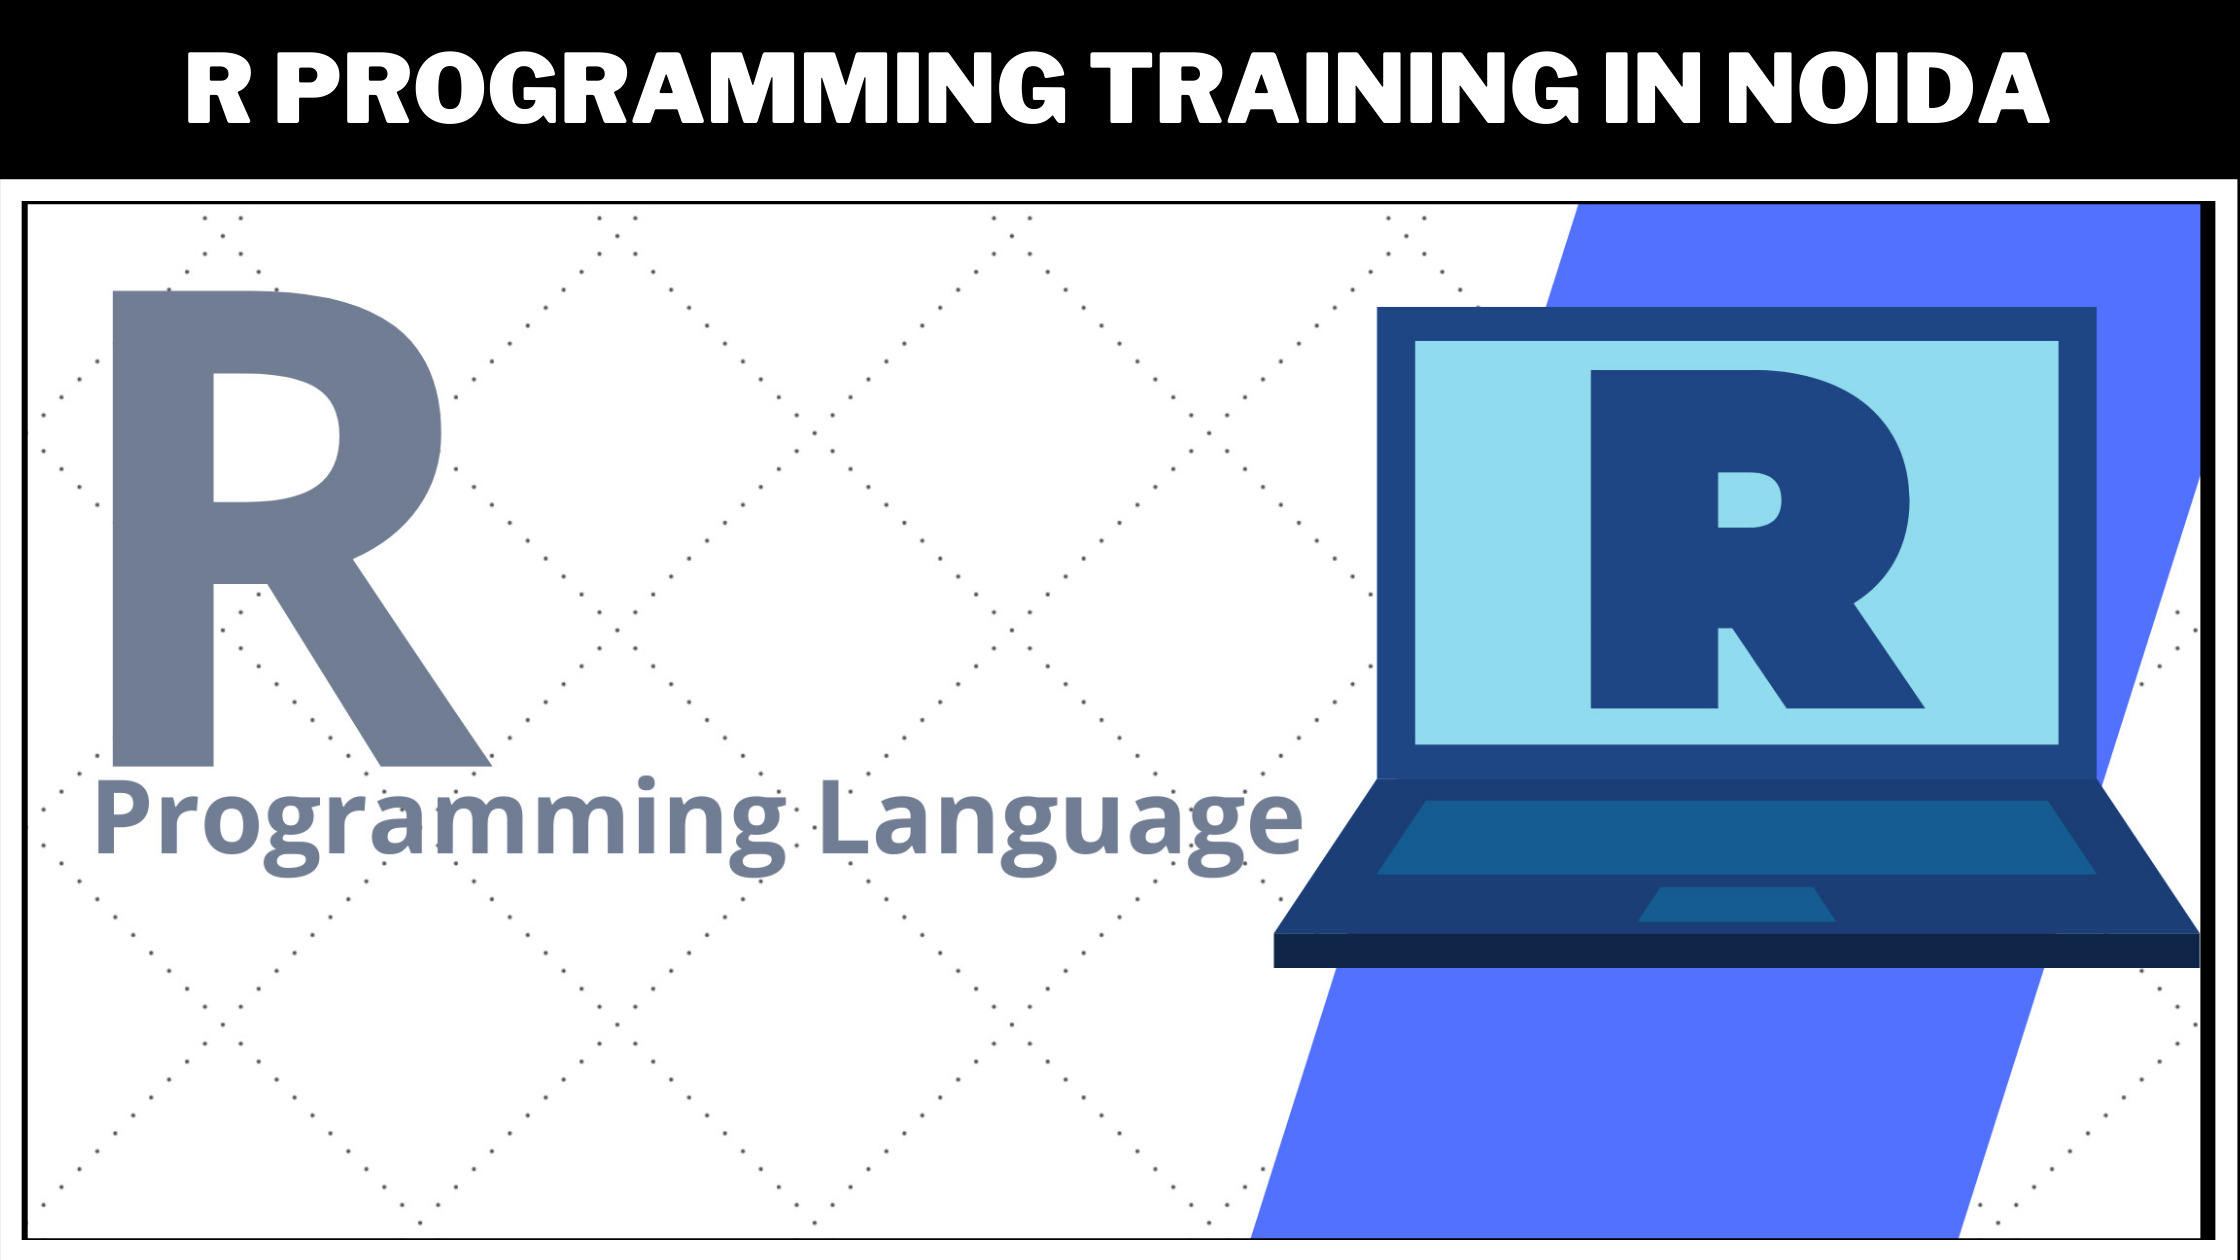 r_programming_training_in_noida-background.jpeg